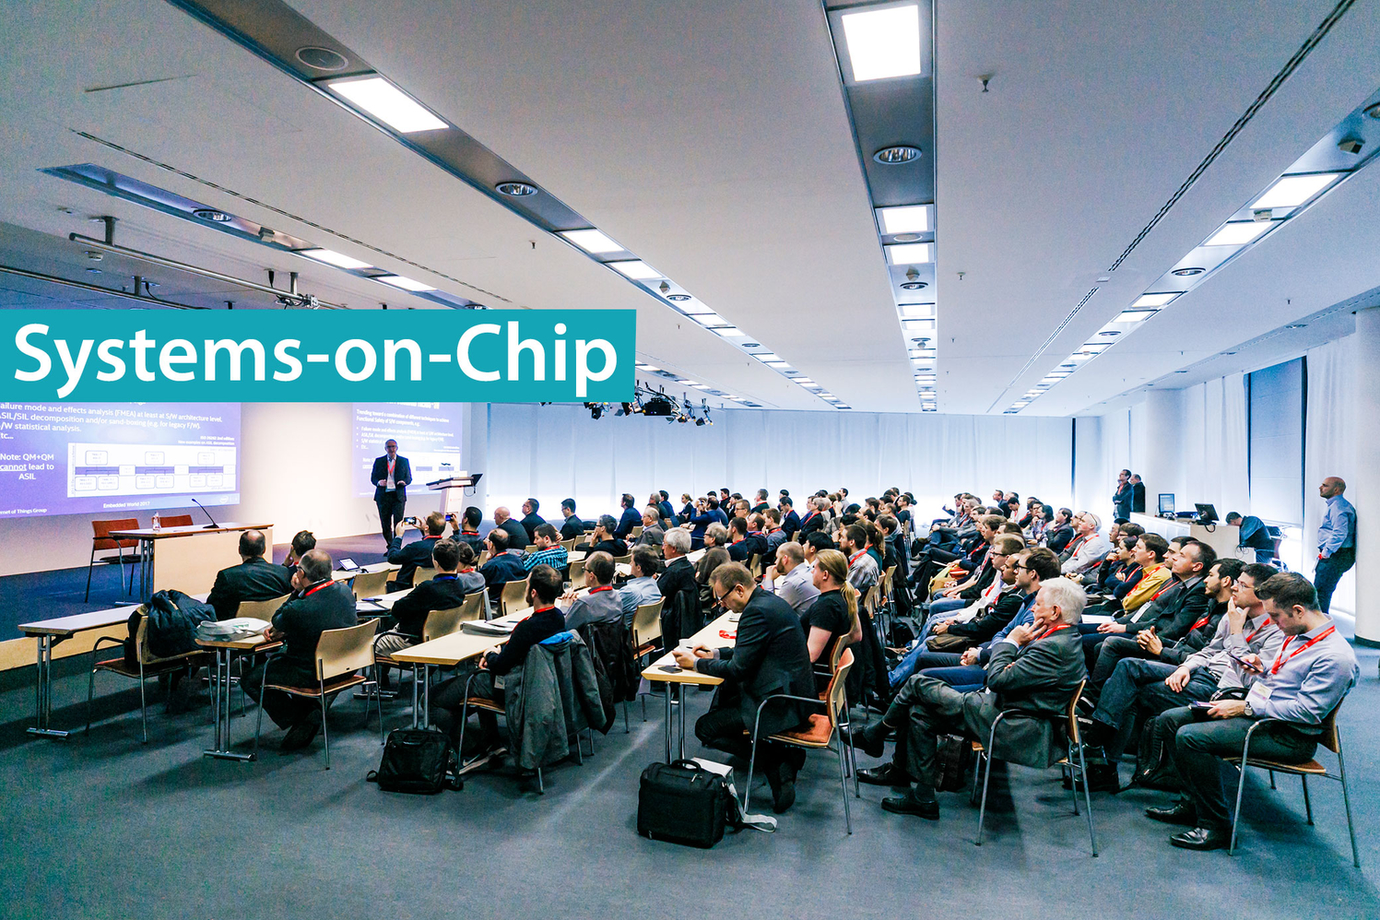 embedded world Conference - System-on-Chip